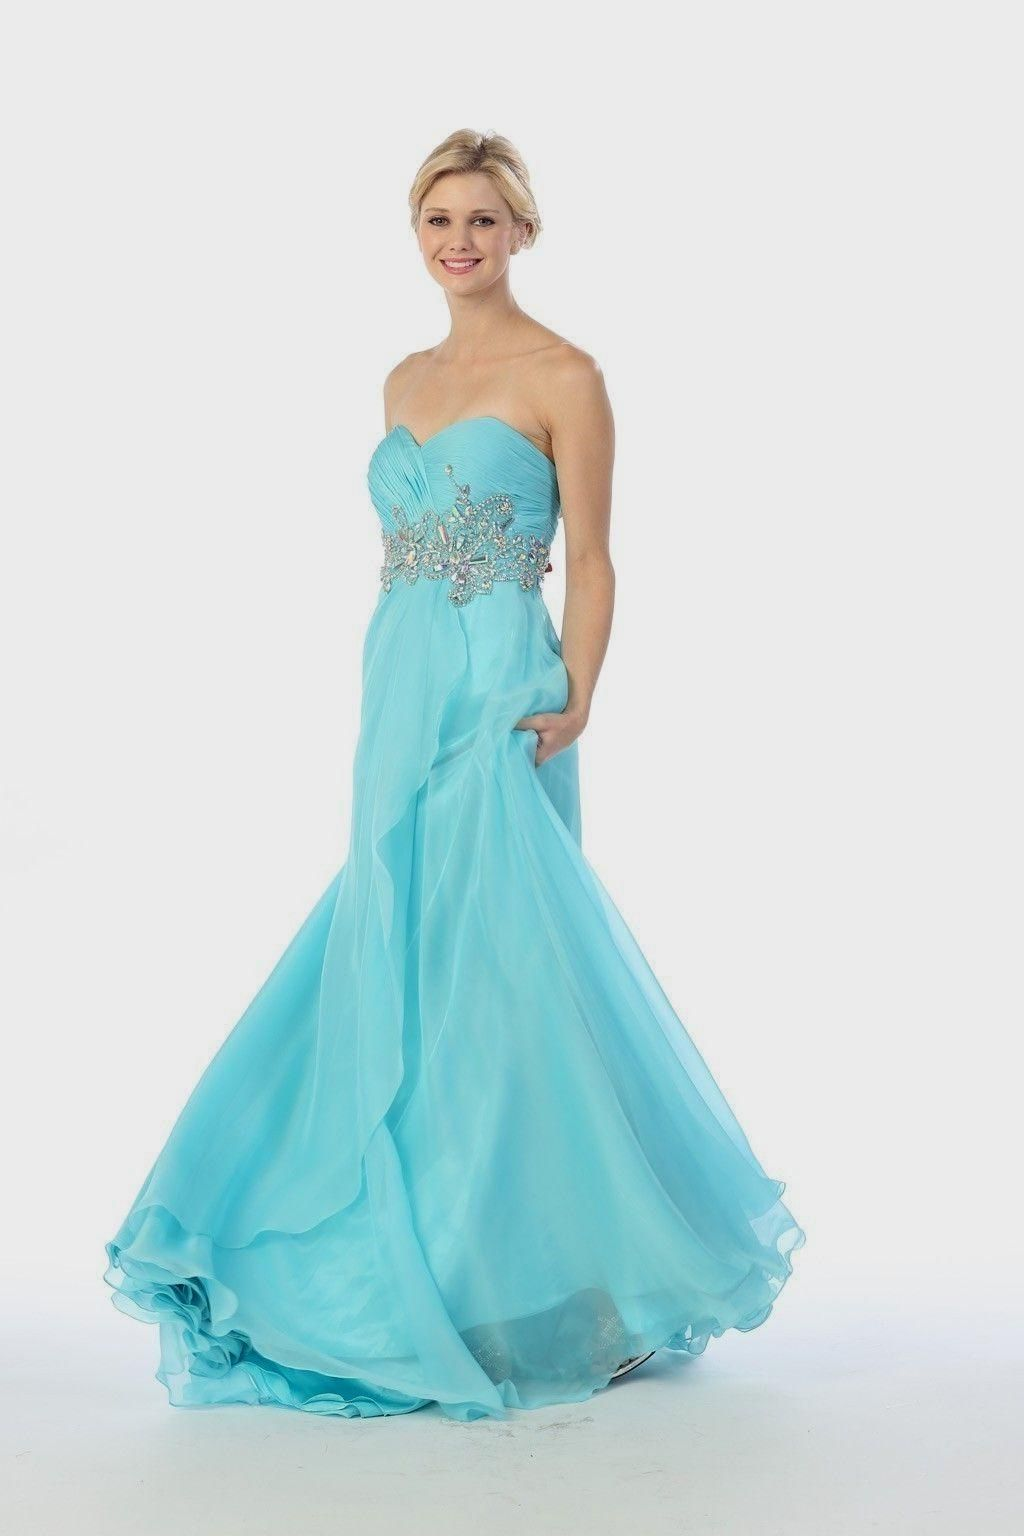 Light Blue Dresses For Weddings Women S Check More At Http